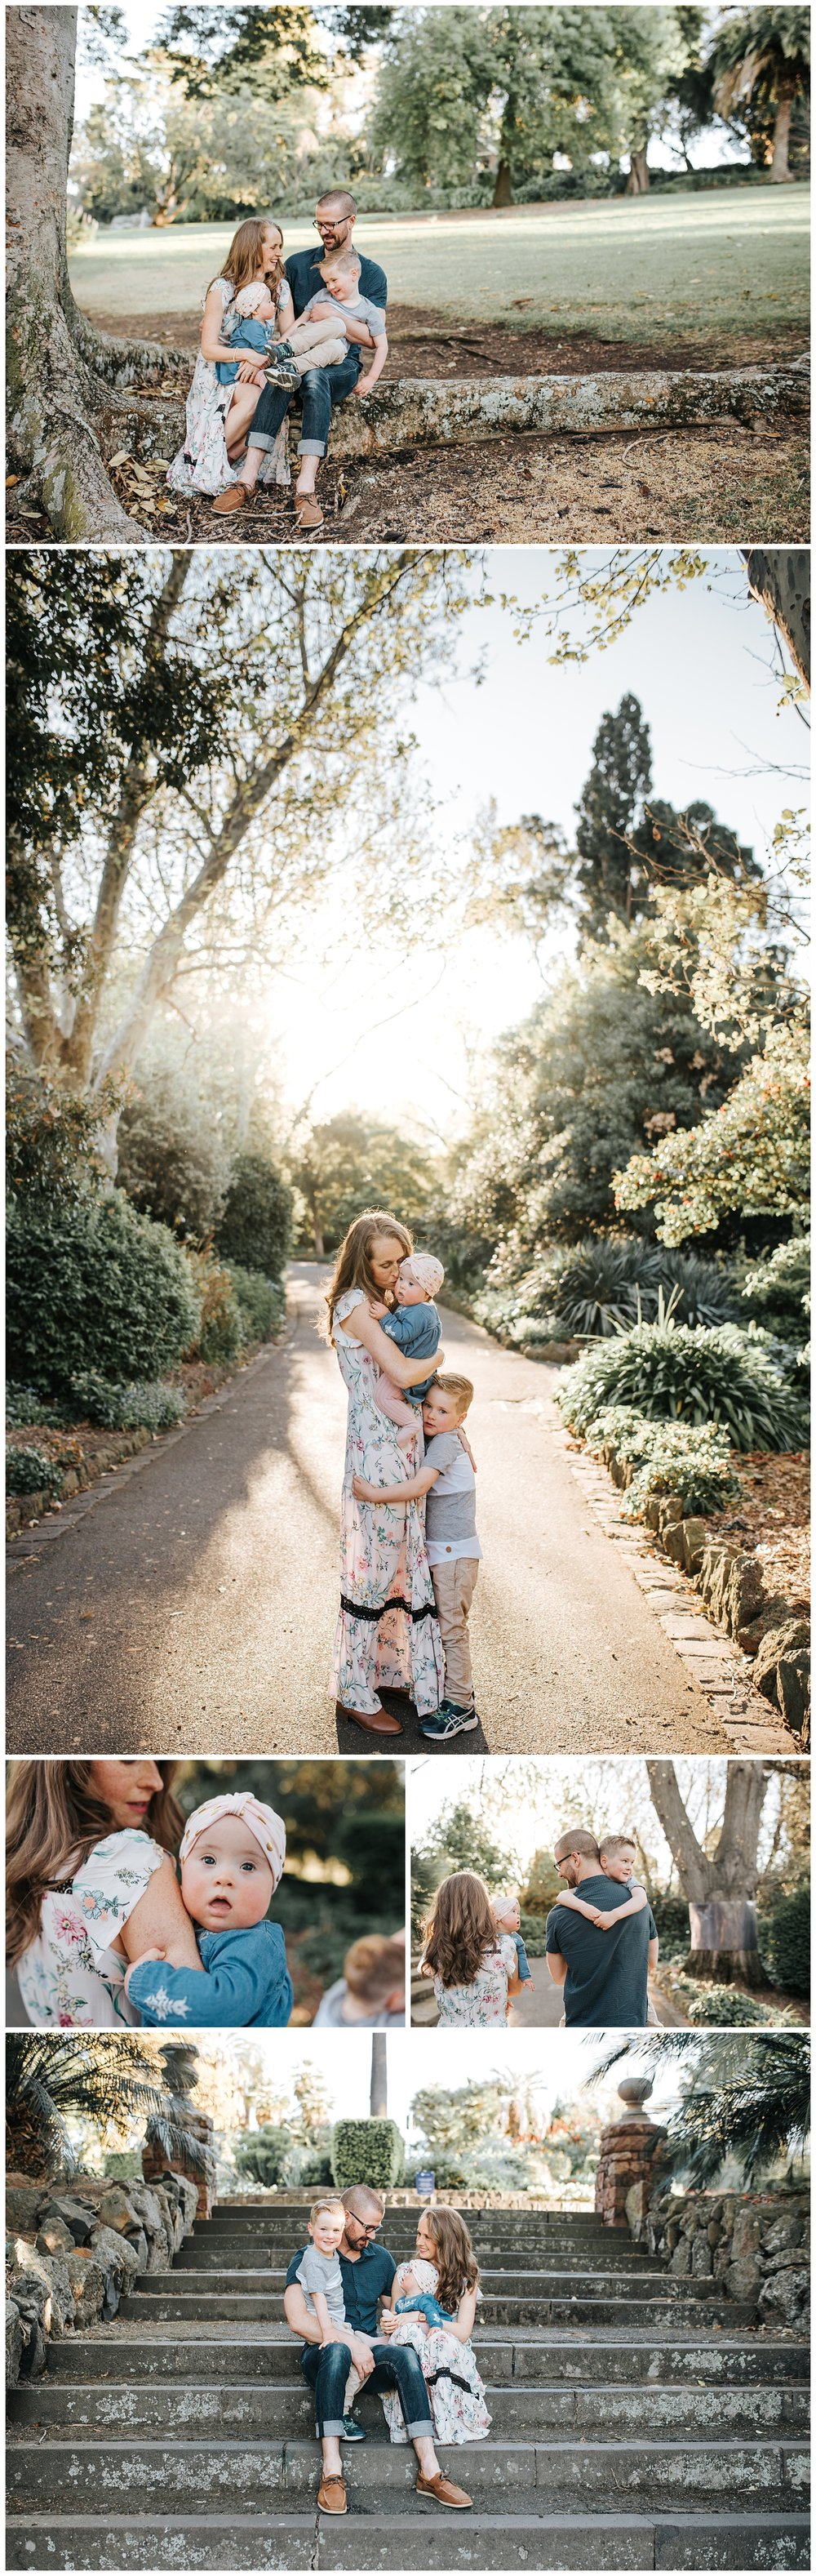 natural professional family photography melbourne